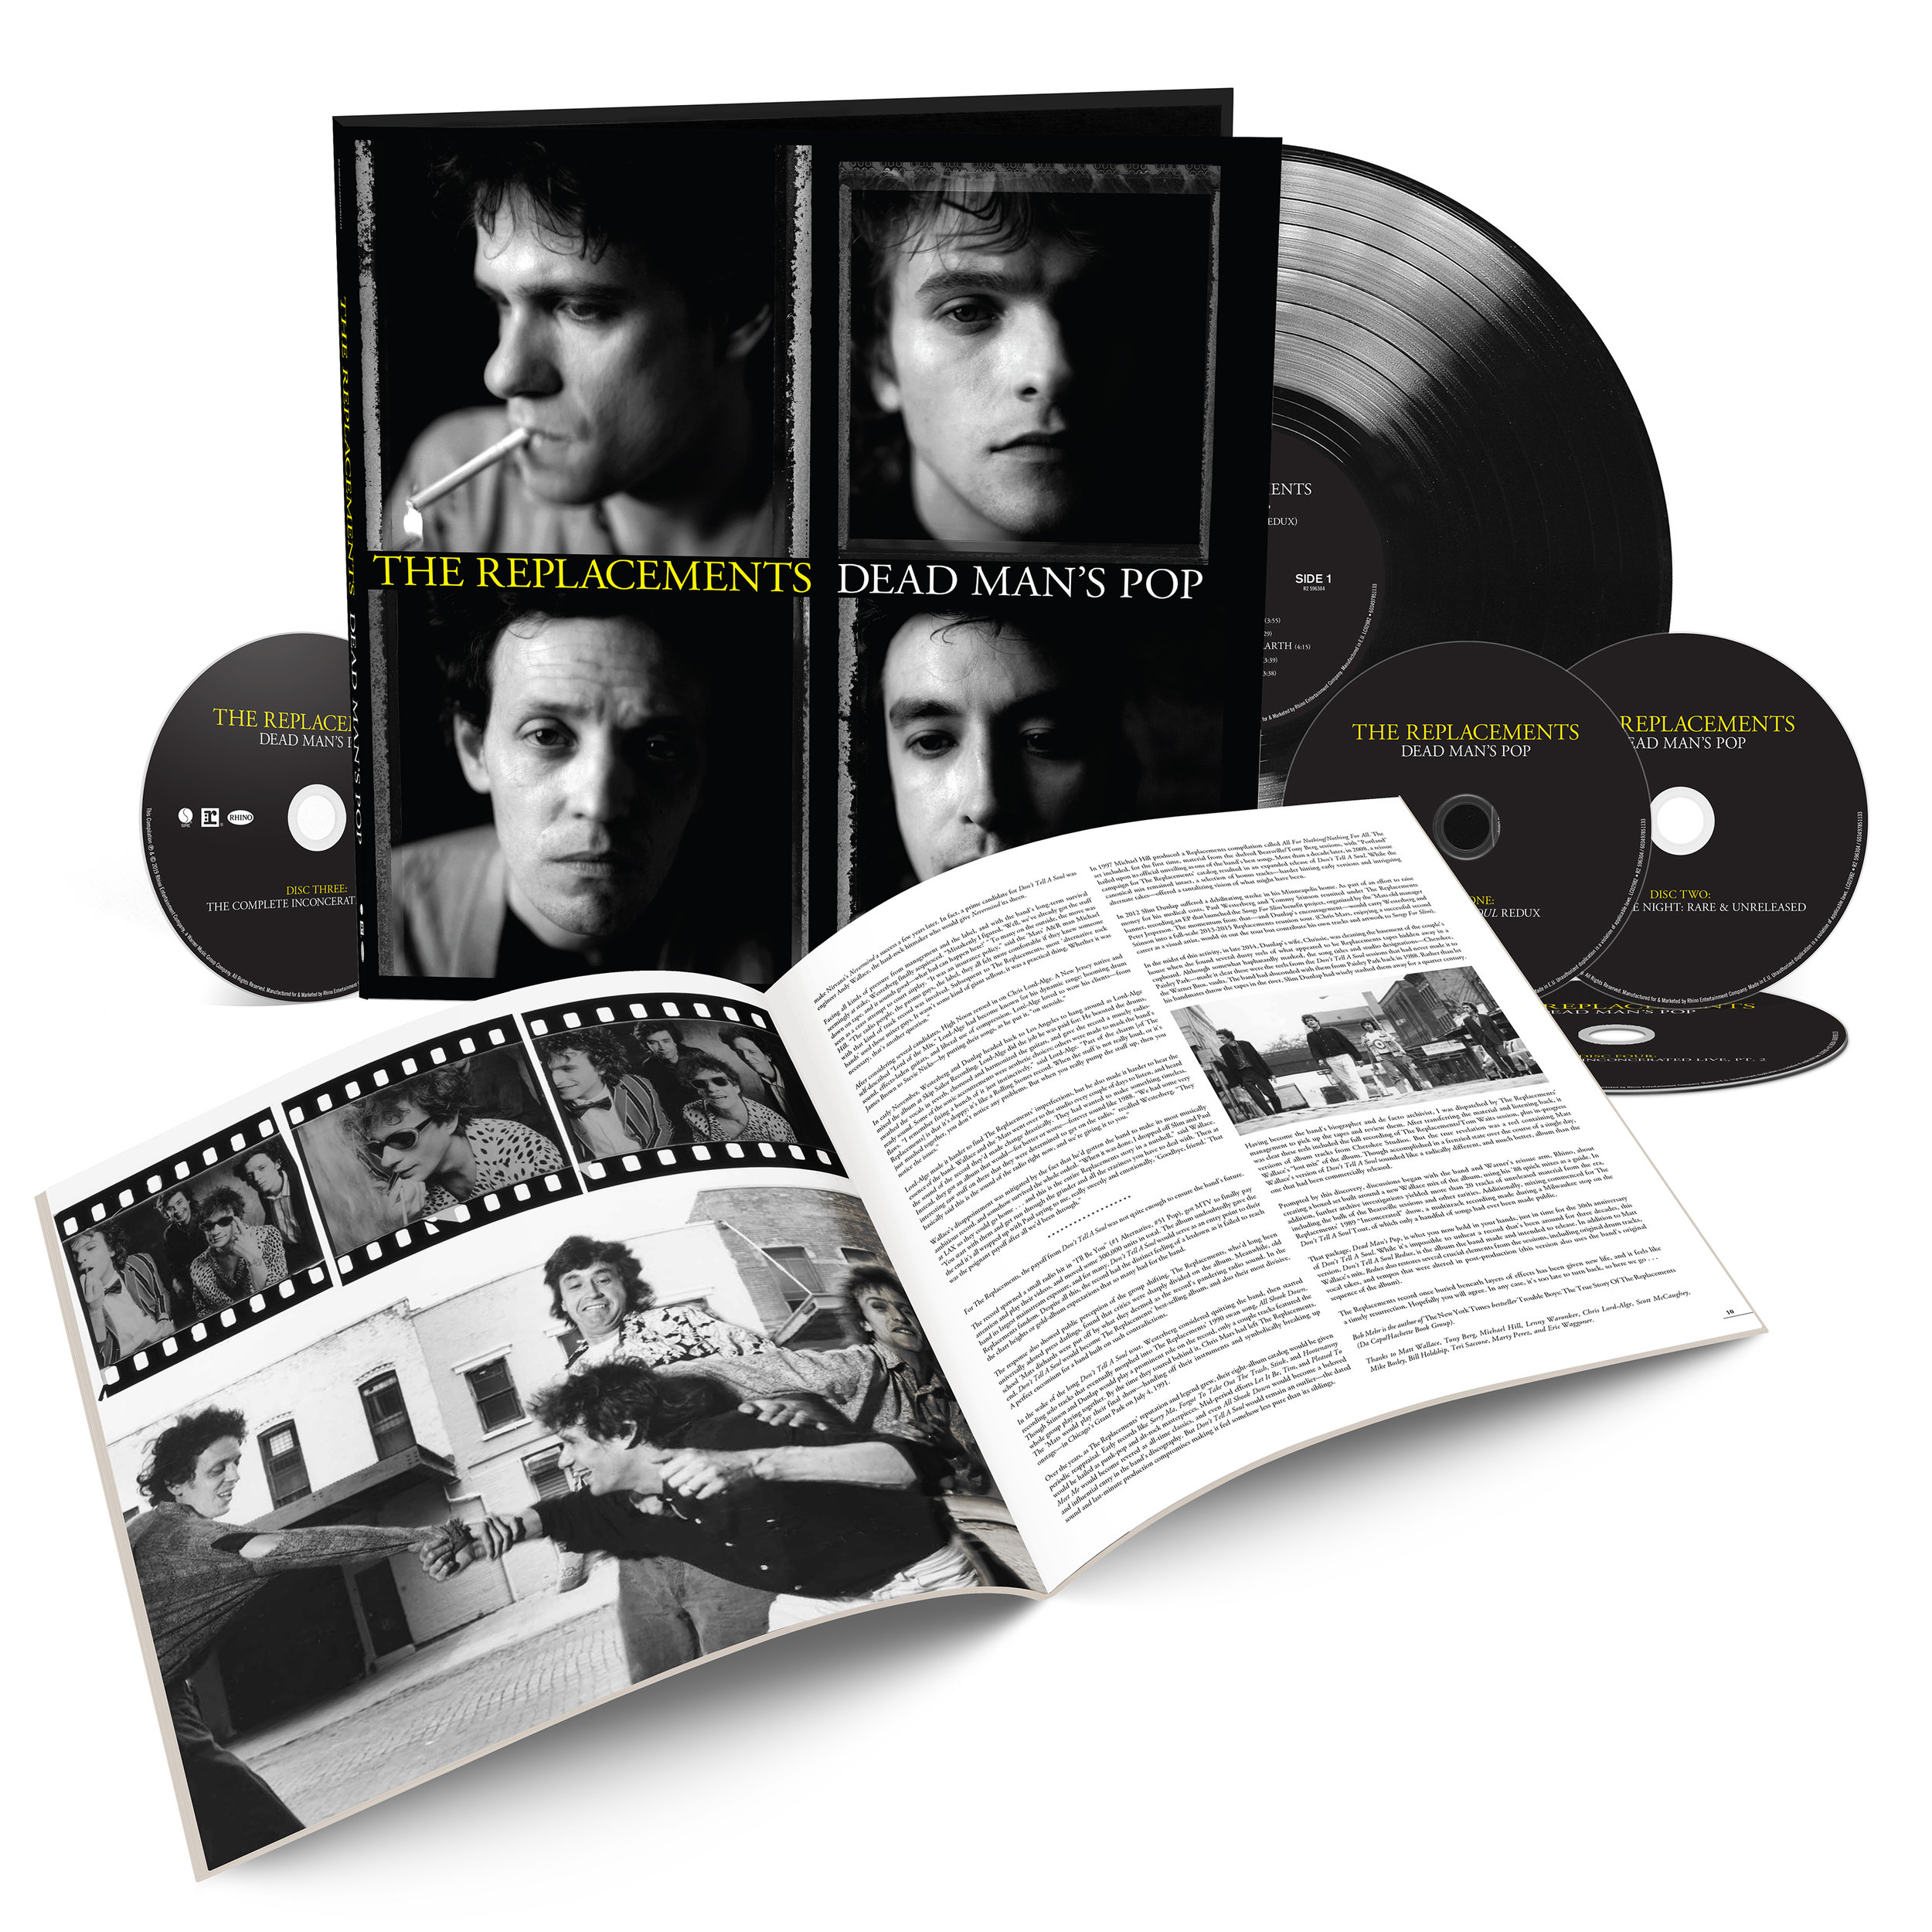 THE REPLACEMENTS' DEAD MAN'S POP - 4CD/1LP BOXED SET UNVEILED.